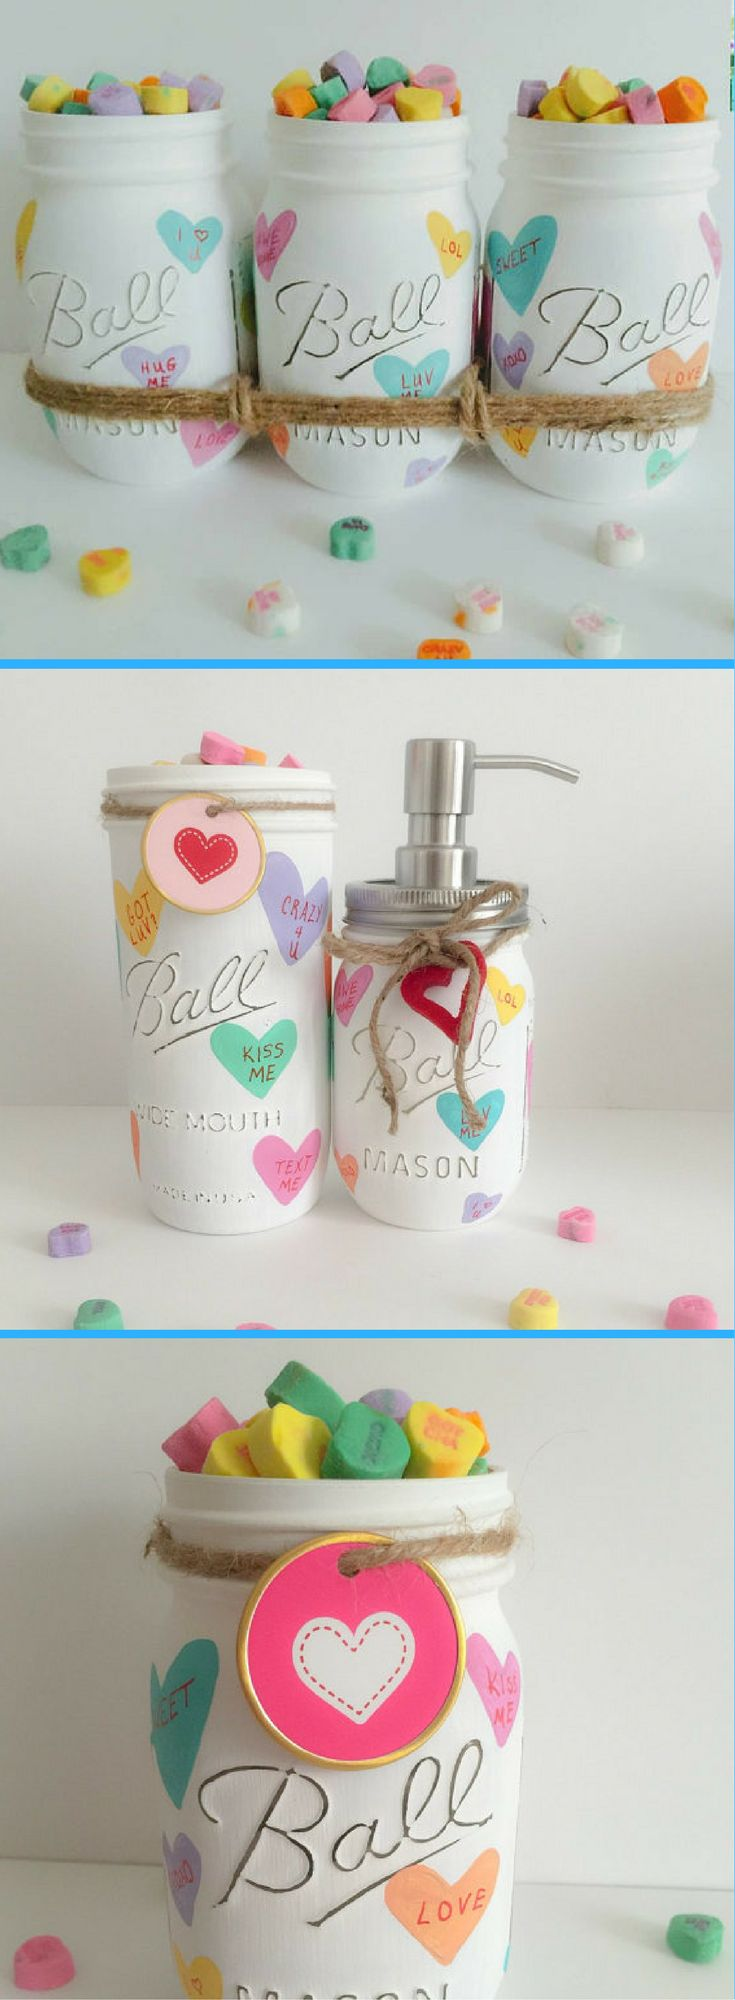 Love these handpainted distressed Valentine inspired Mason Jars.  Different styles to choose from. Love the soap dispenser as well! Mason Jars Centerpiece. Valentines Day Mason Jars Decor. Distressed Mason Jars. Valentines Day 2018 #Ad #valentinesday #homedecor #masonjars